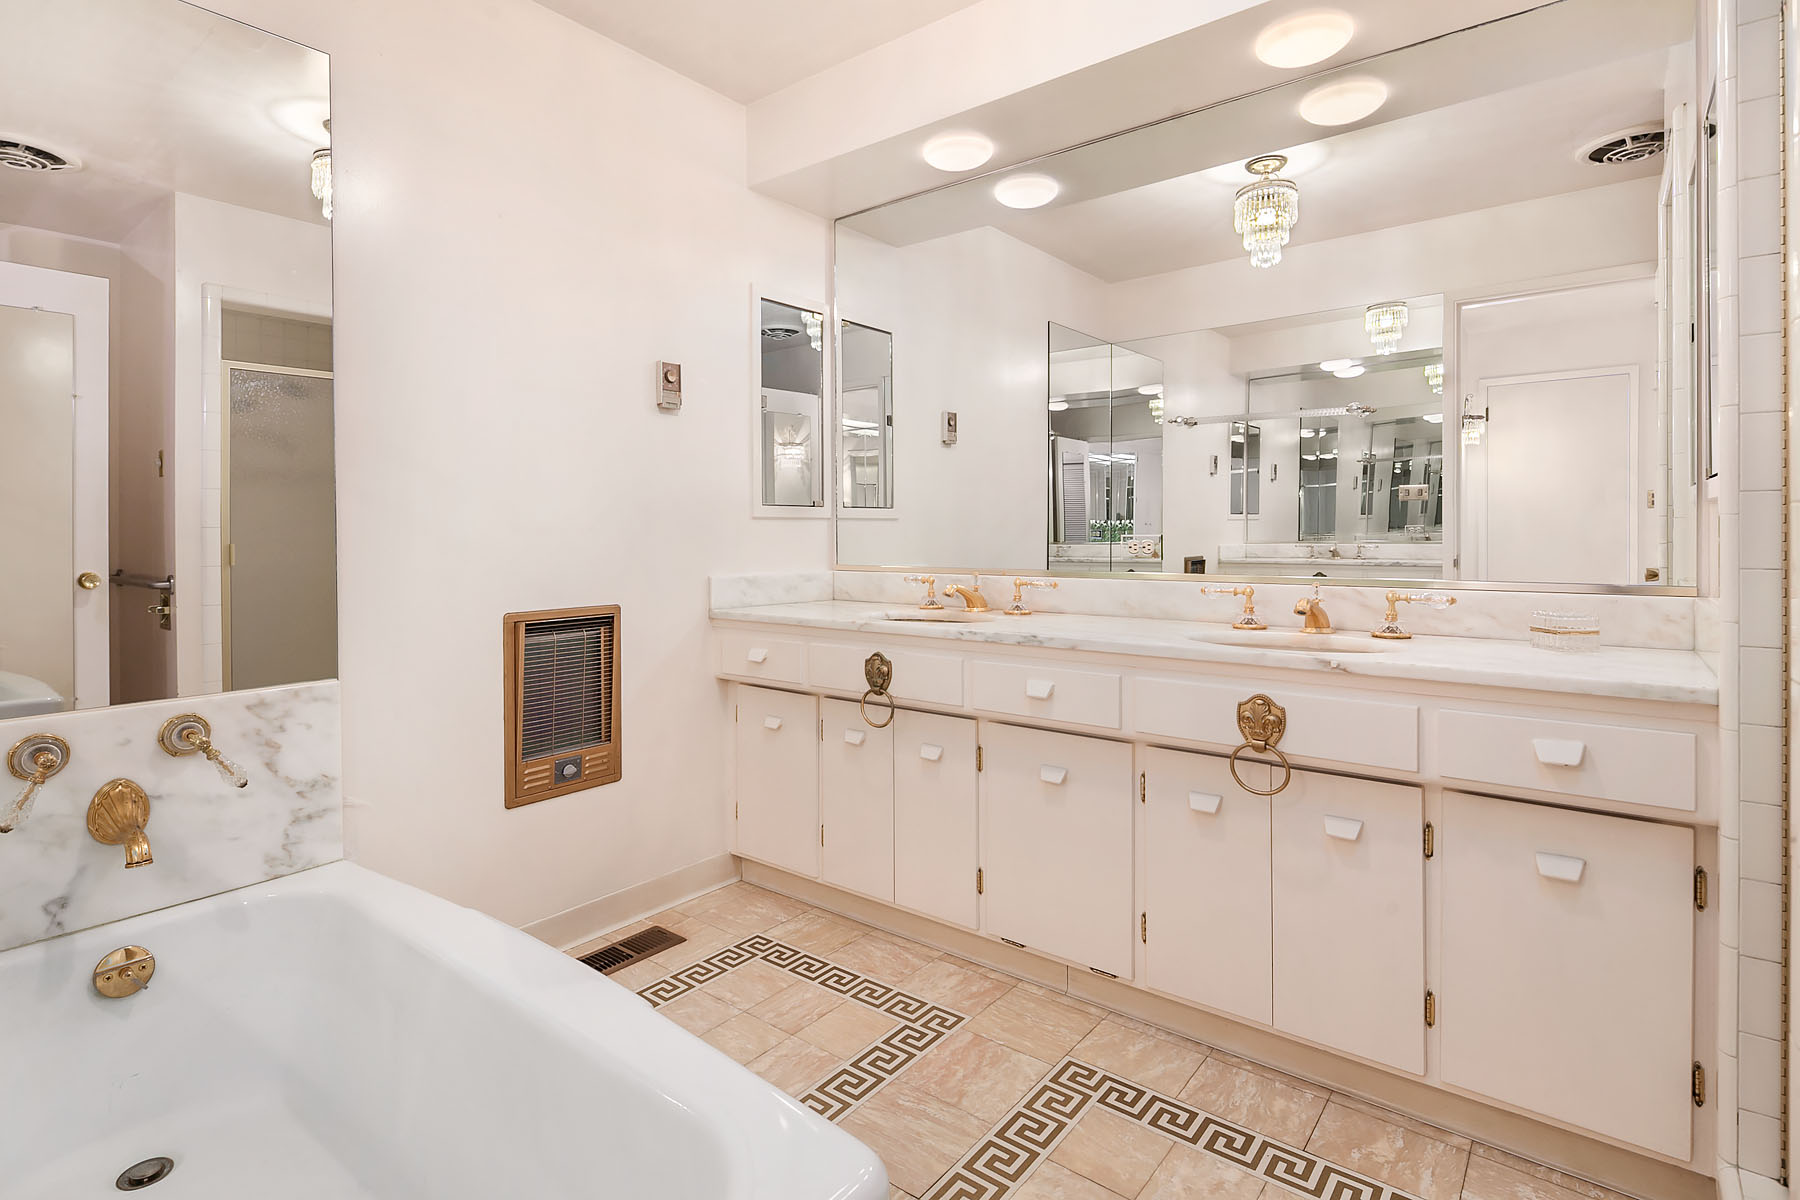 Hollywood Regency bathroom